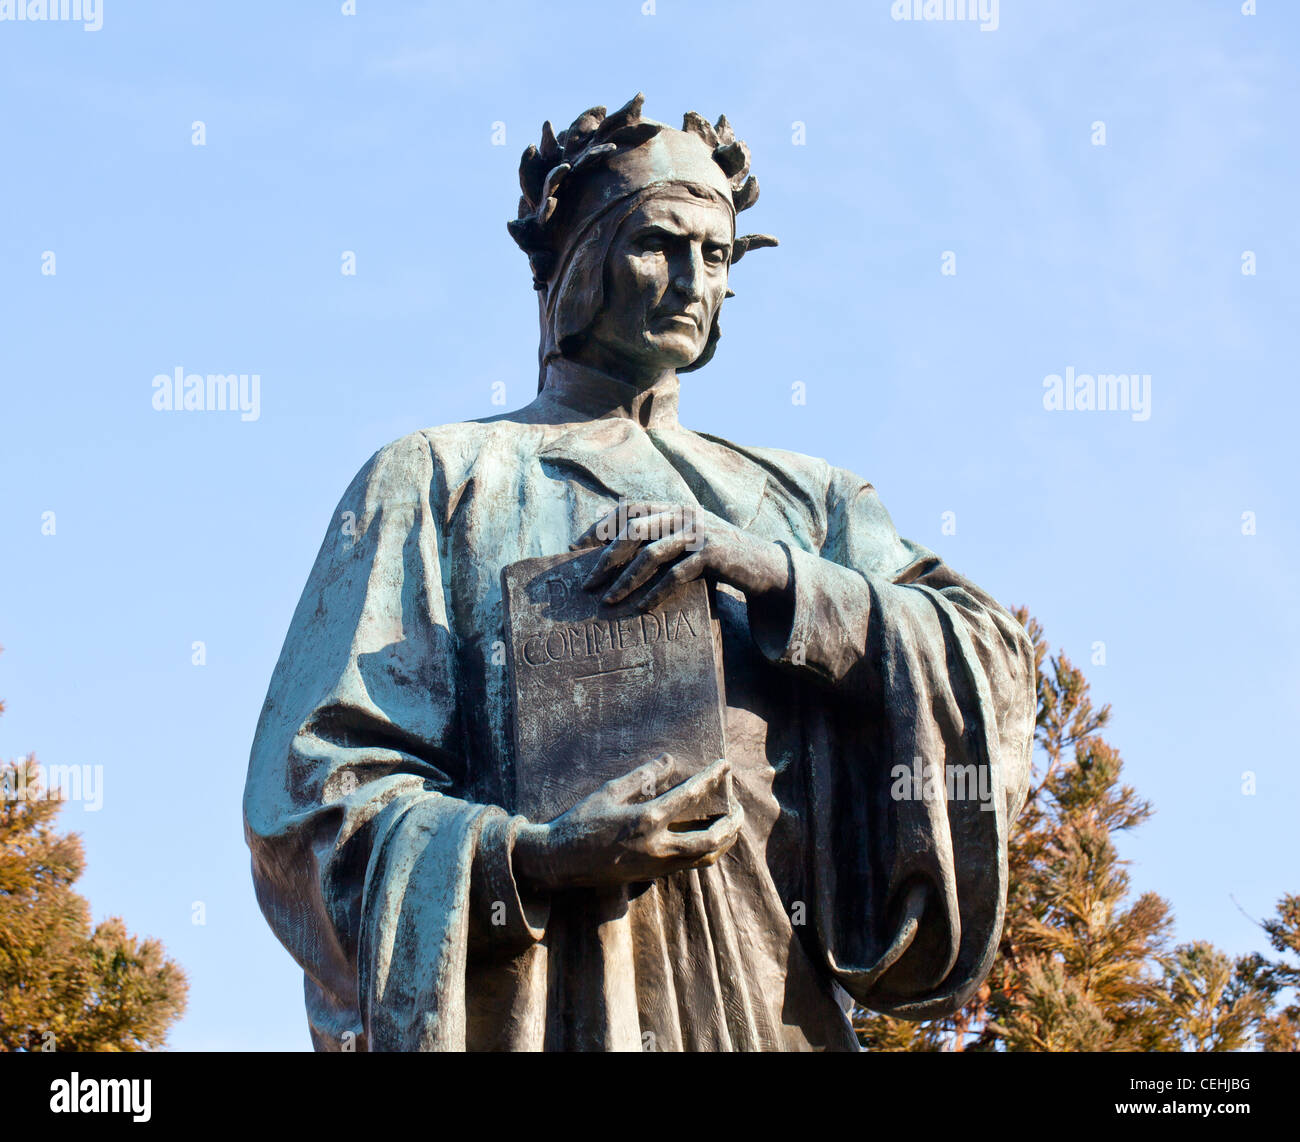 Statue of Dante holding Commedia book in Meridian Hill Park in Washington DC - Stock Image